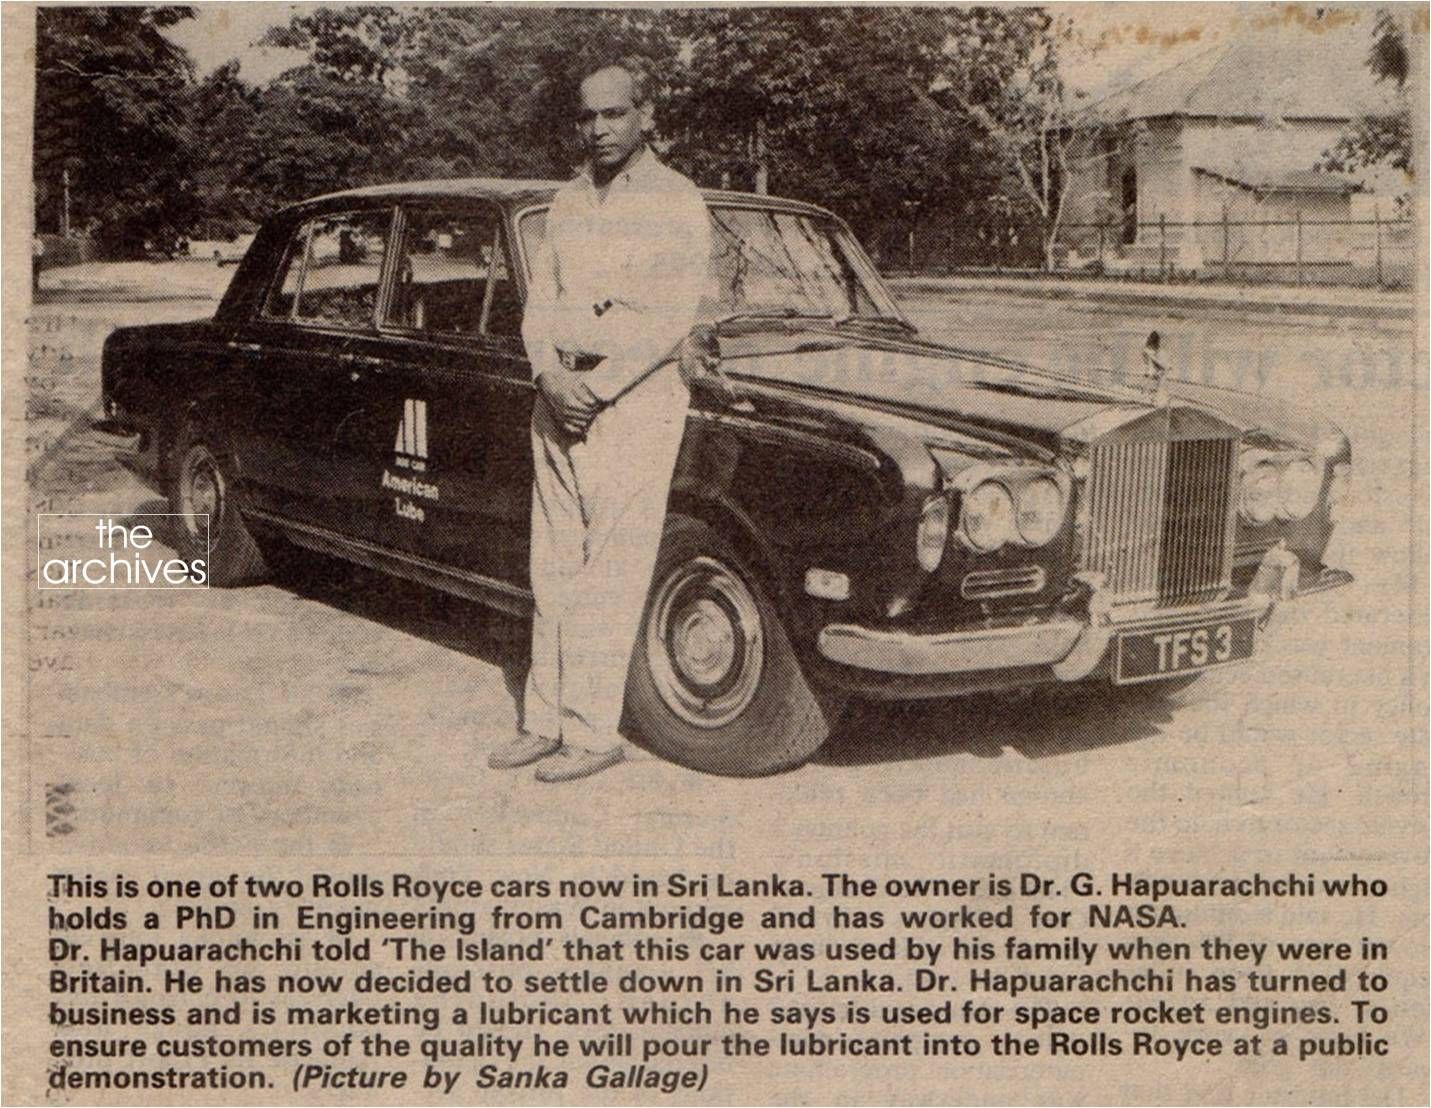 This is one of two Rolls Royce cars now in Sri Lanka. The